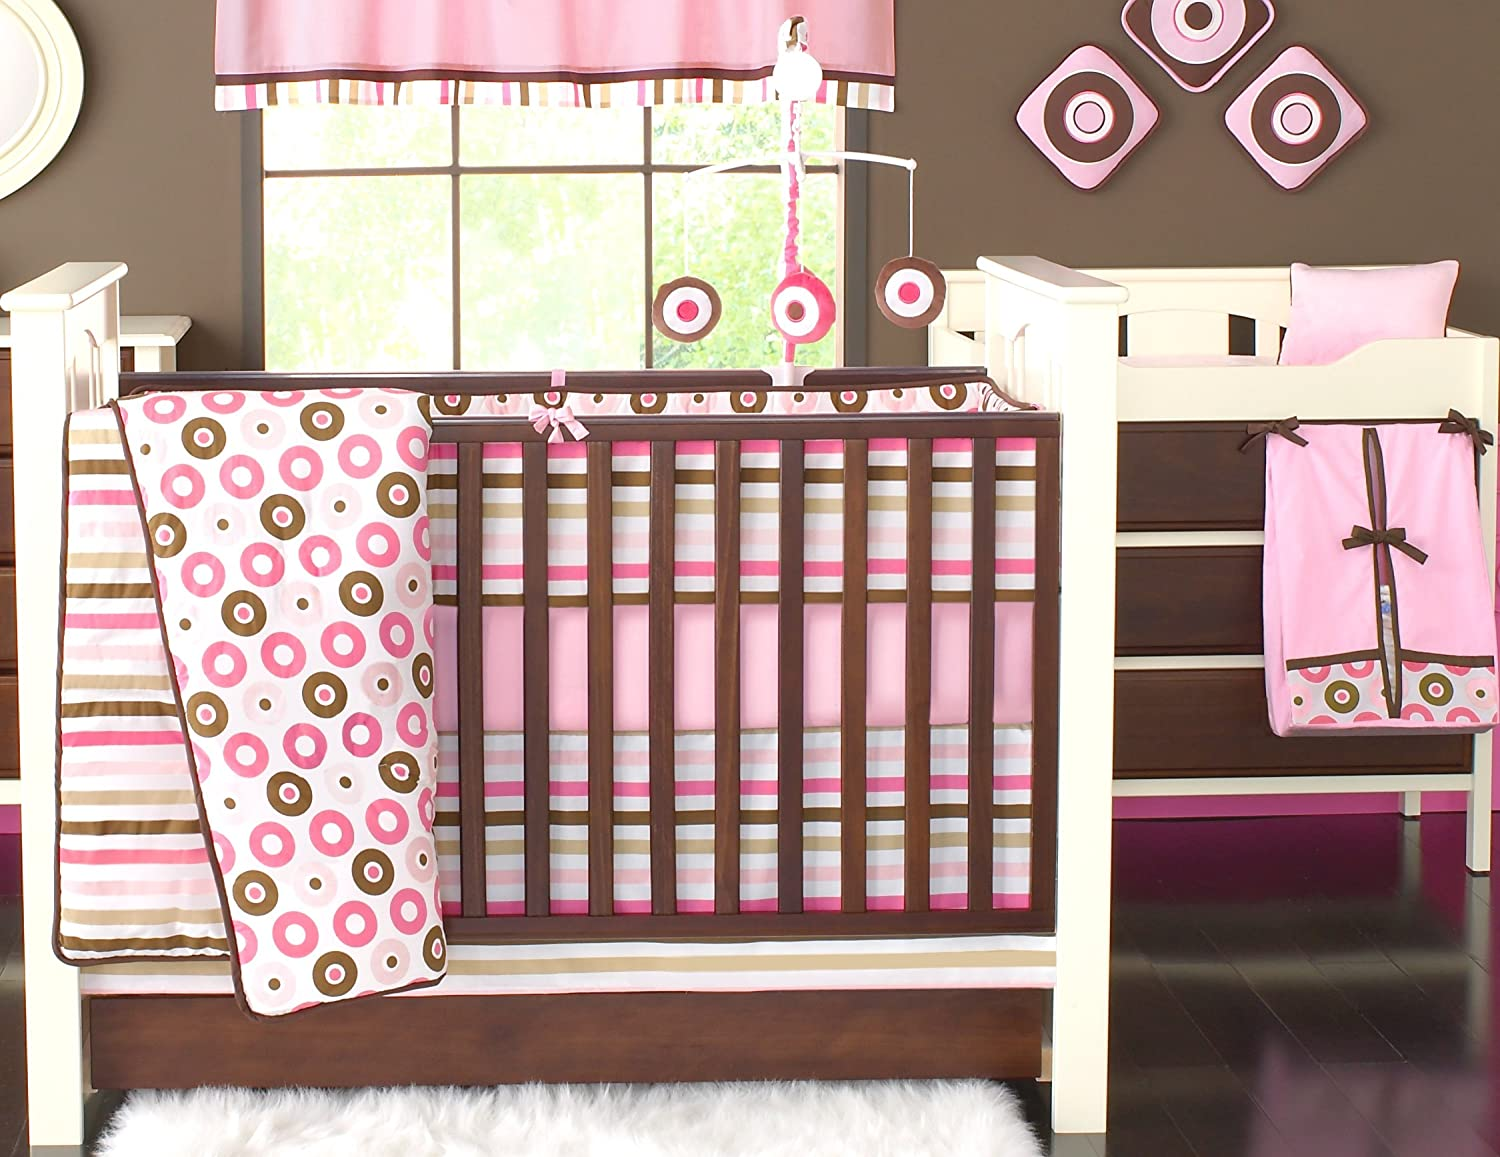 Bacati Crib Fitted Sheets Mod Stripes Pink//Chocolate Pack of 2